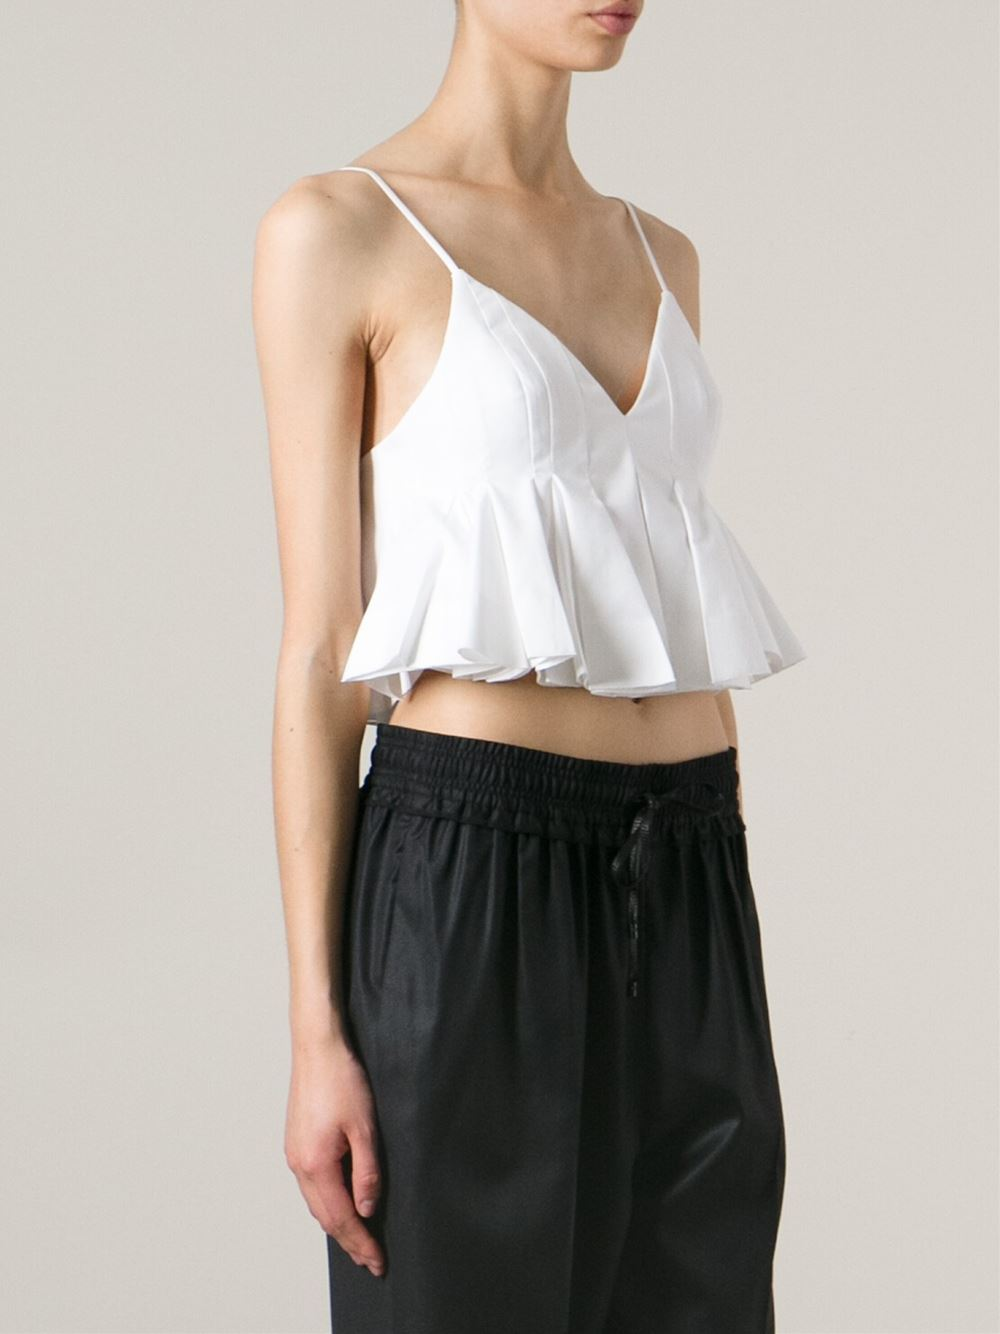 Alexander Wang Pleated Crop Top - Spazio Pritelli - Farfetch.com